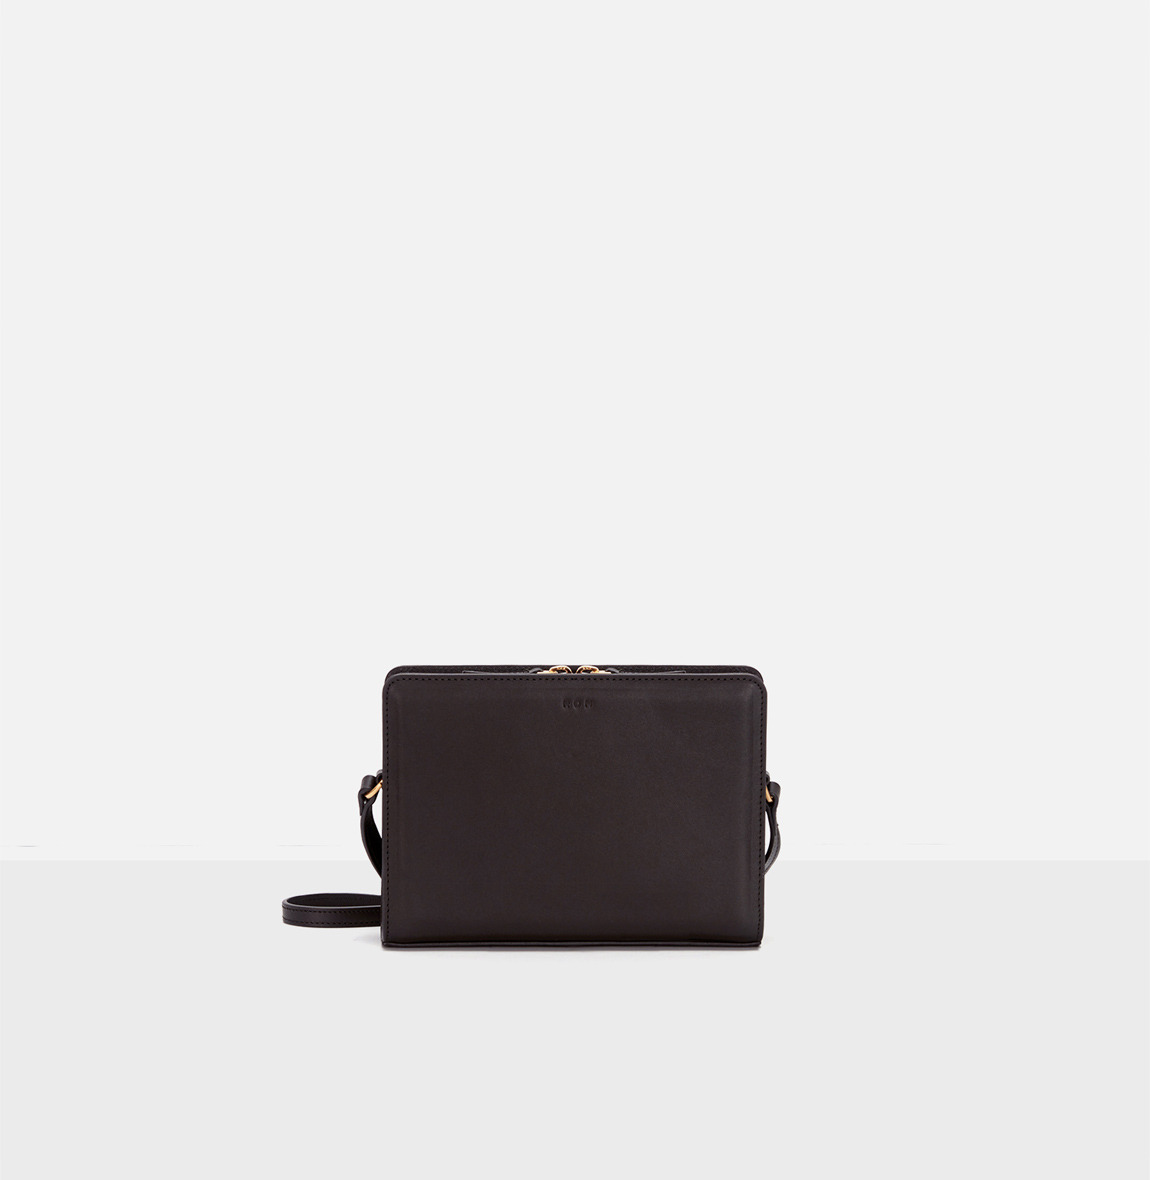 Square small shoulder bag Umber